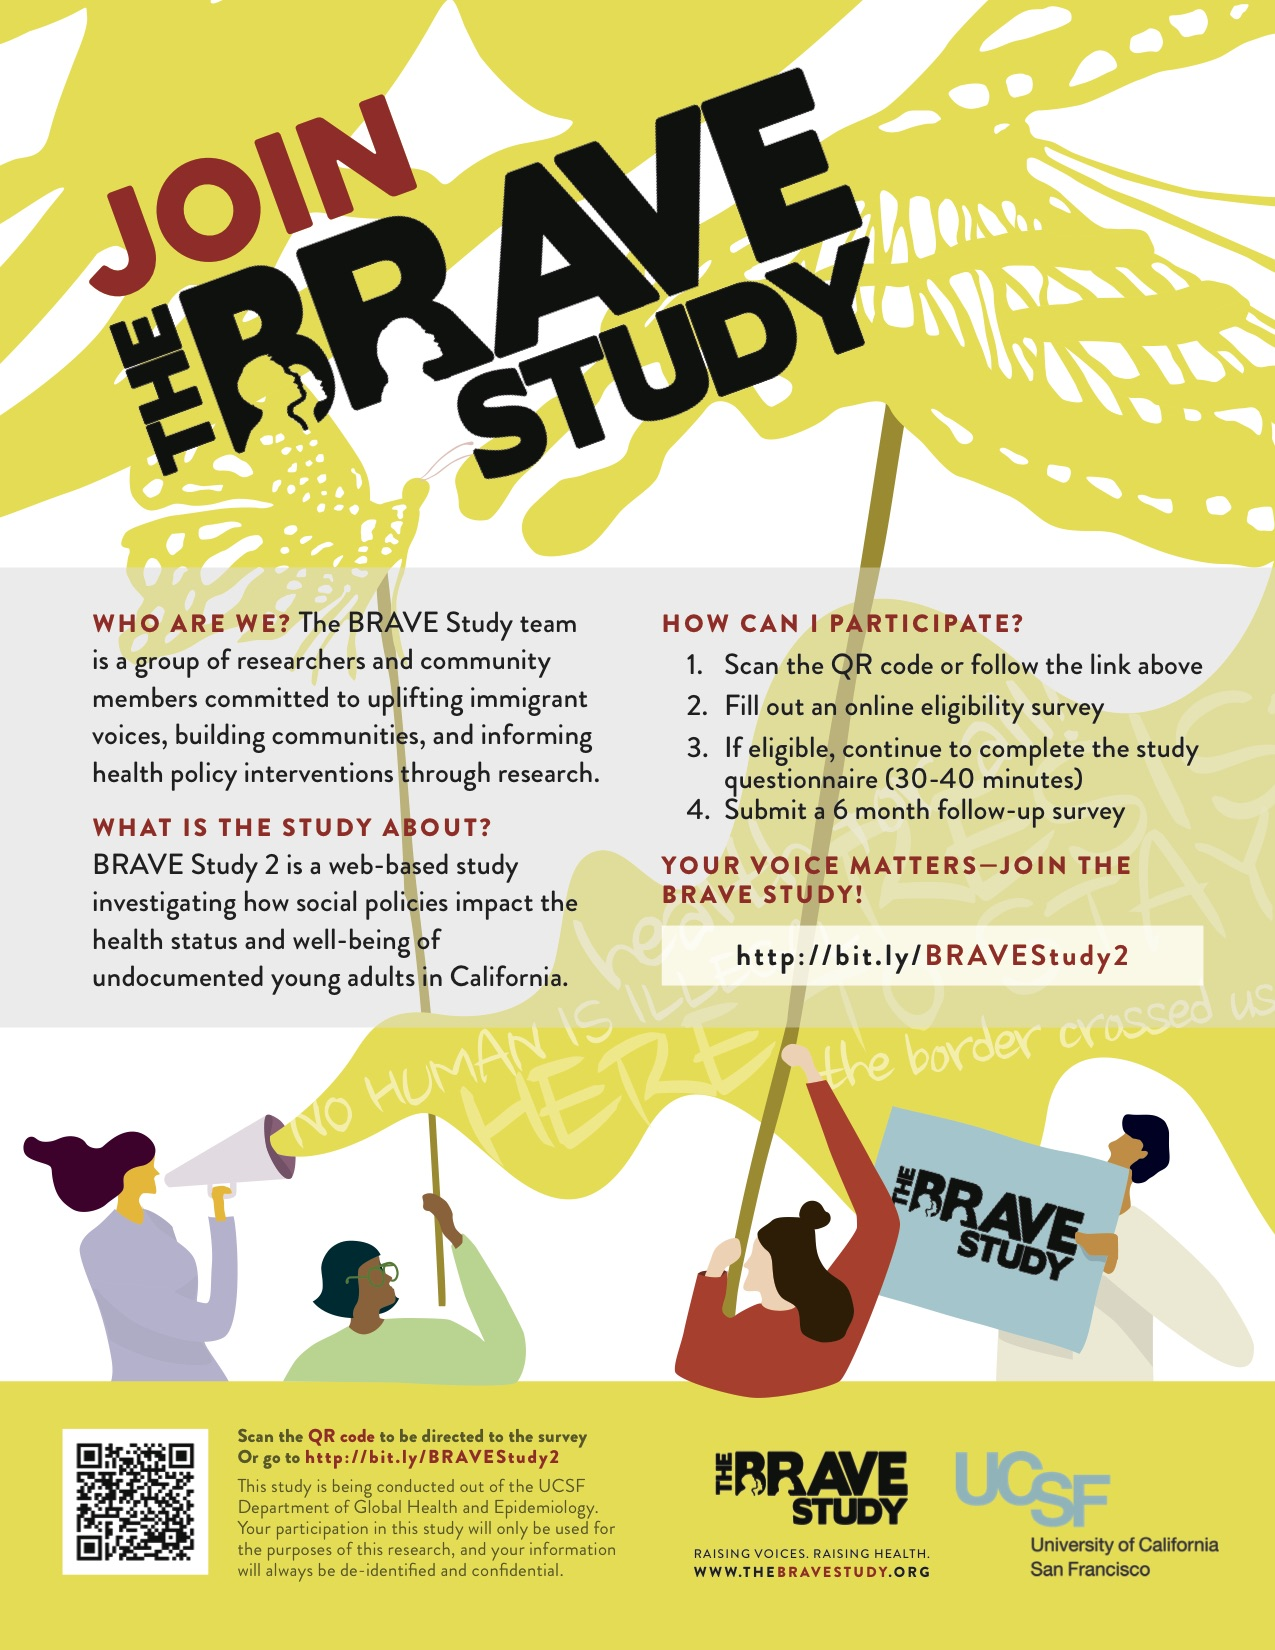 5-Things-About-The-BRAVE-Study-Infographic.jpg